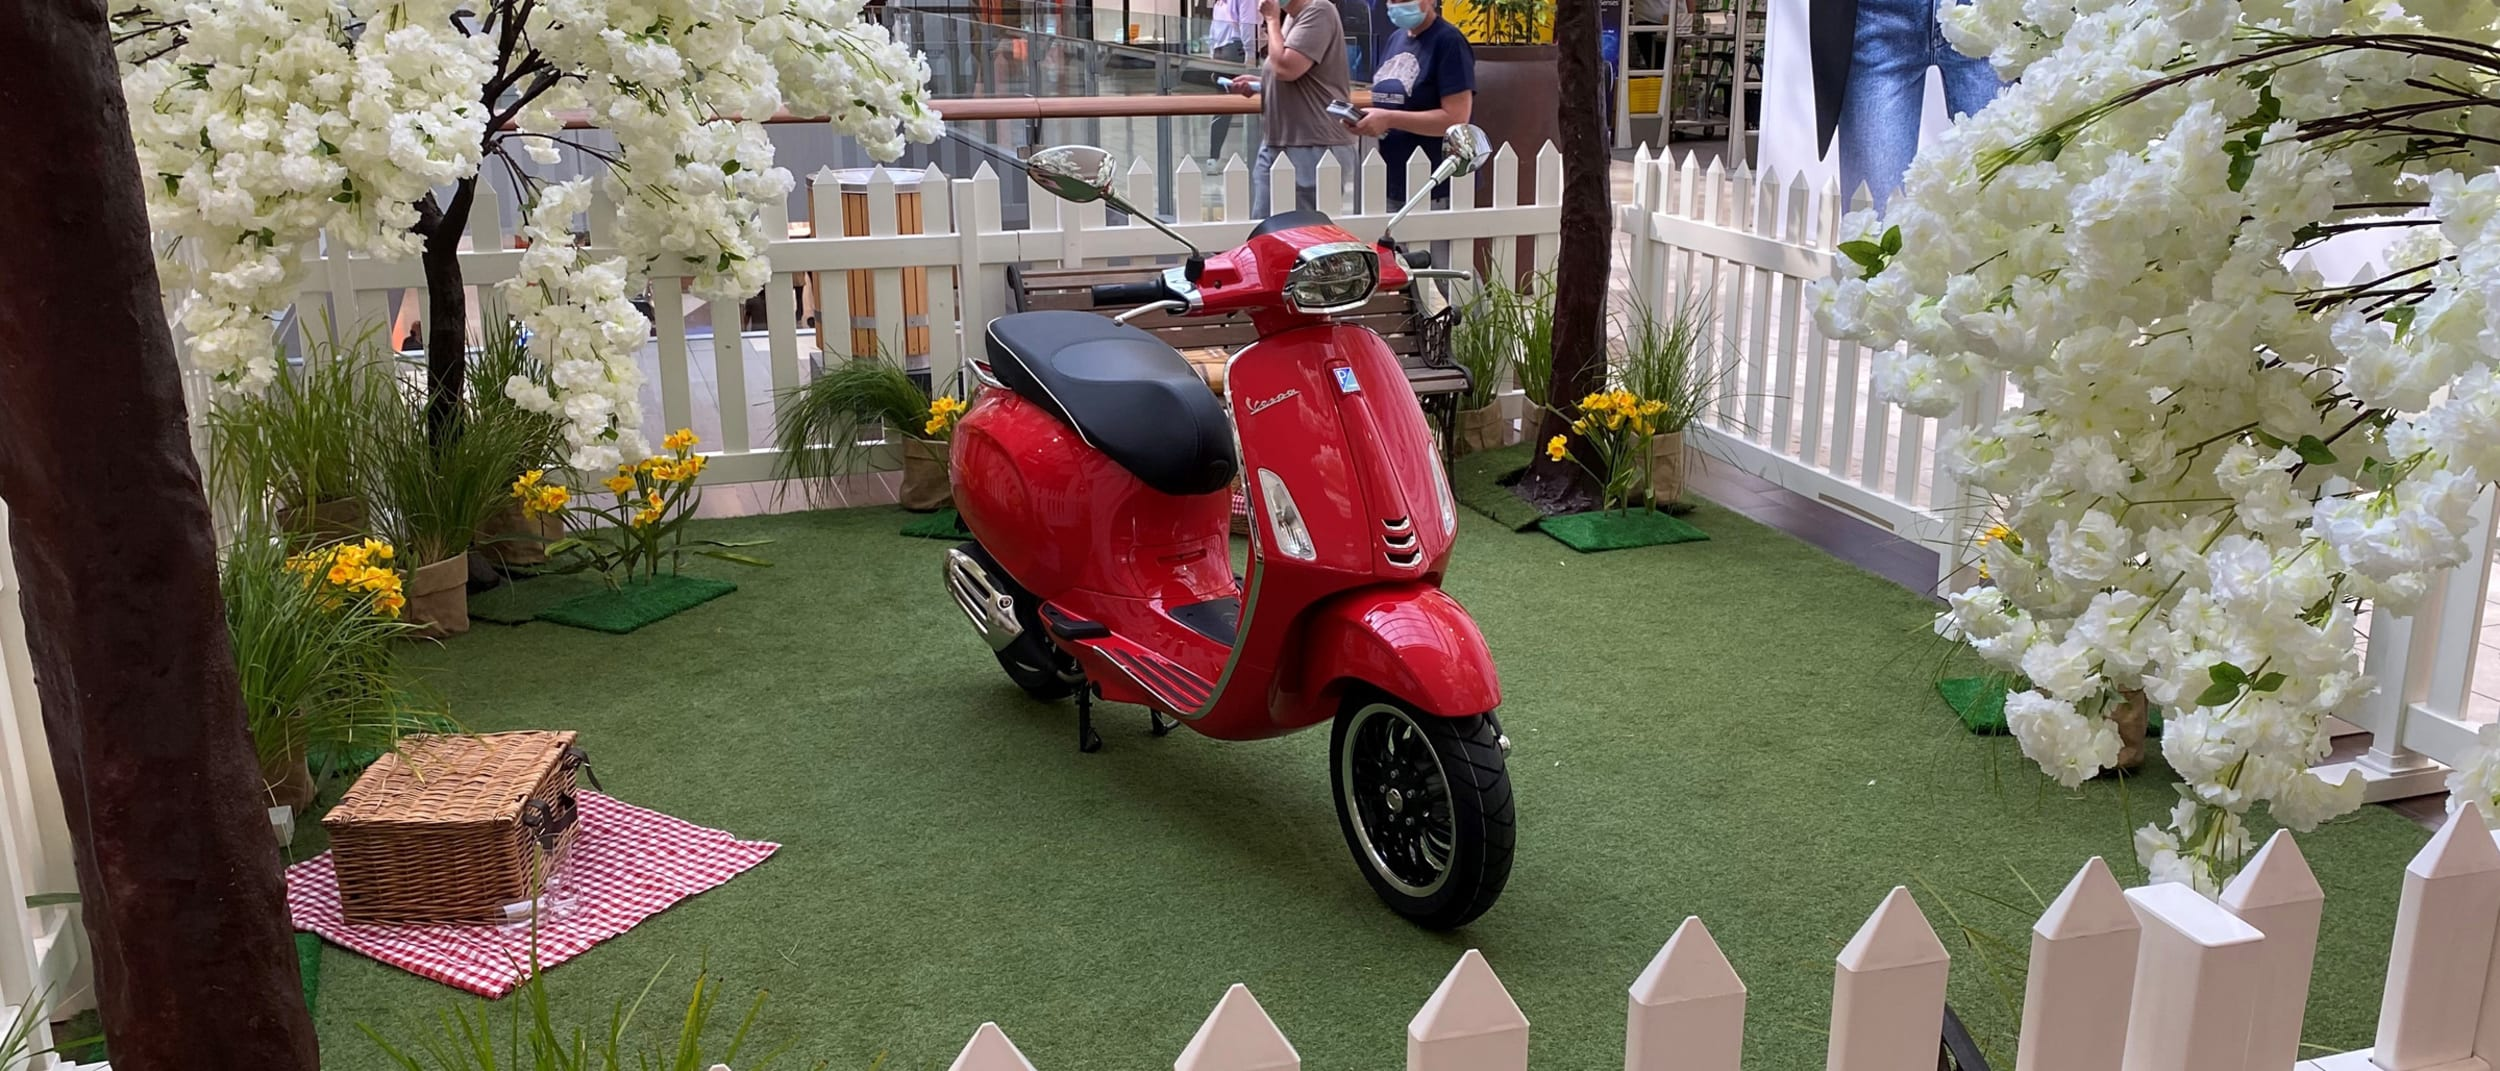 Be in to win* a new Vespa for Spring